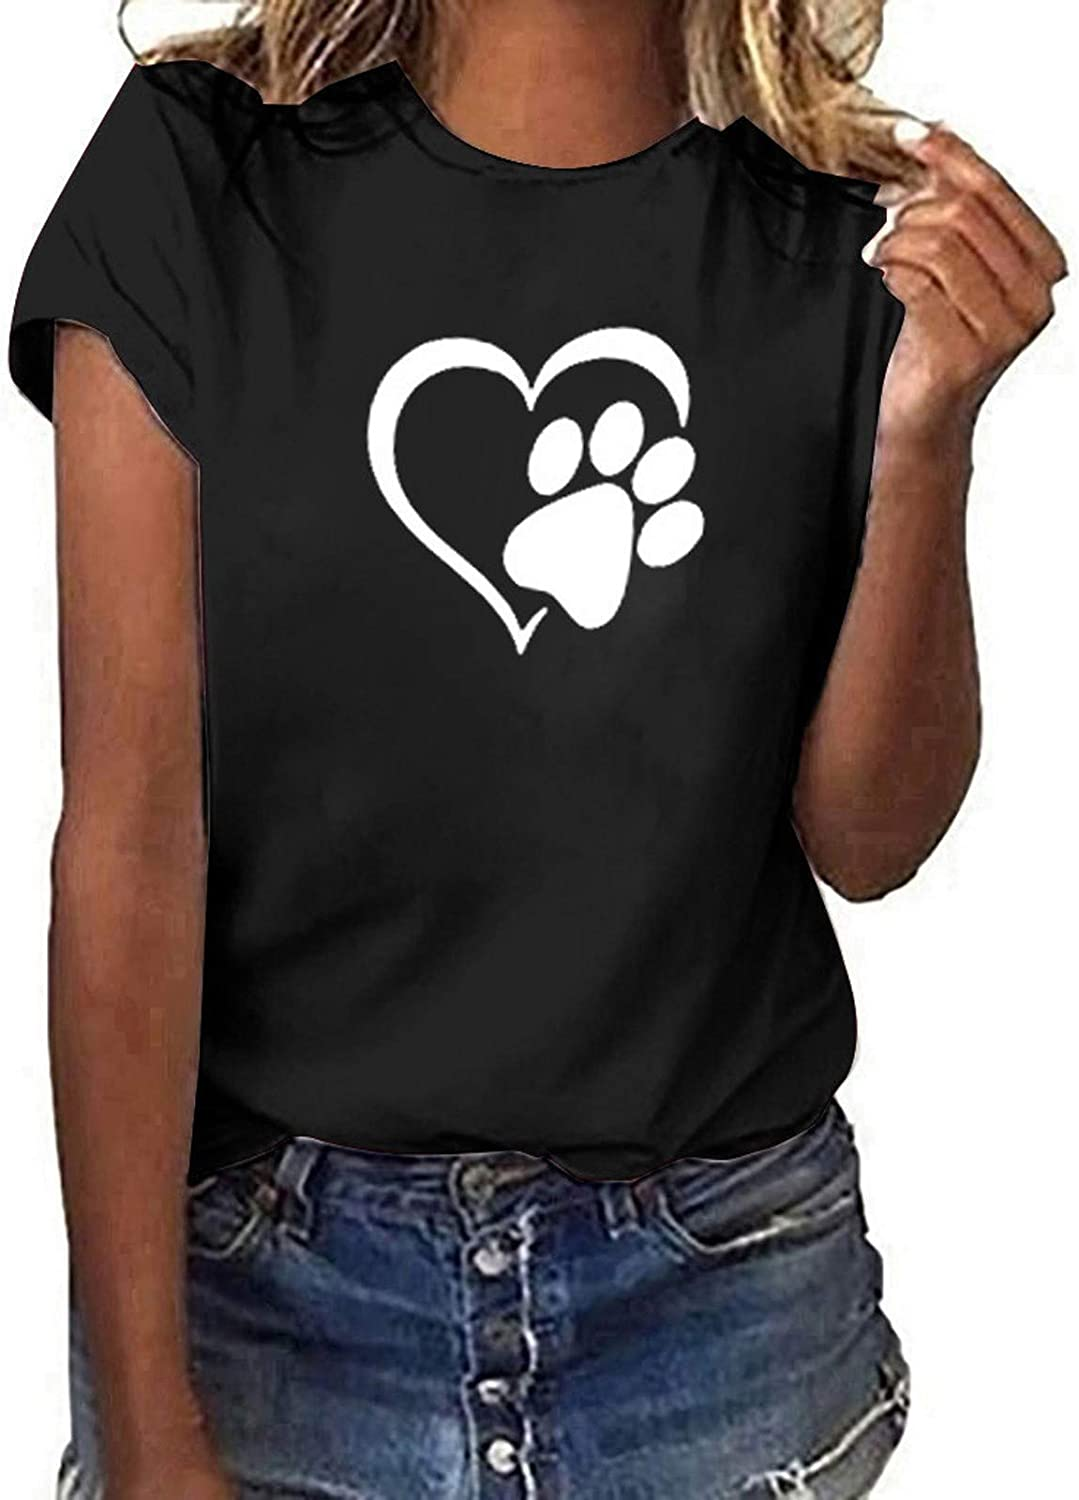 Tshirts for Womens,Women Short Sleeve Shirt Funny T-Shirt Casual Letter Print Cute Graphic Summer Tee Tops Tunics Blouses